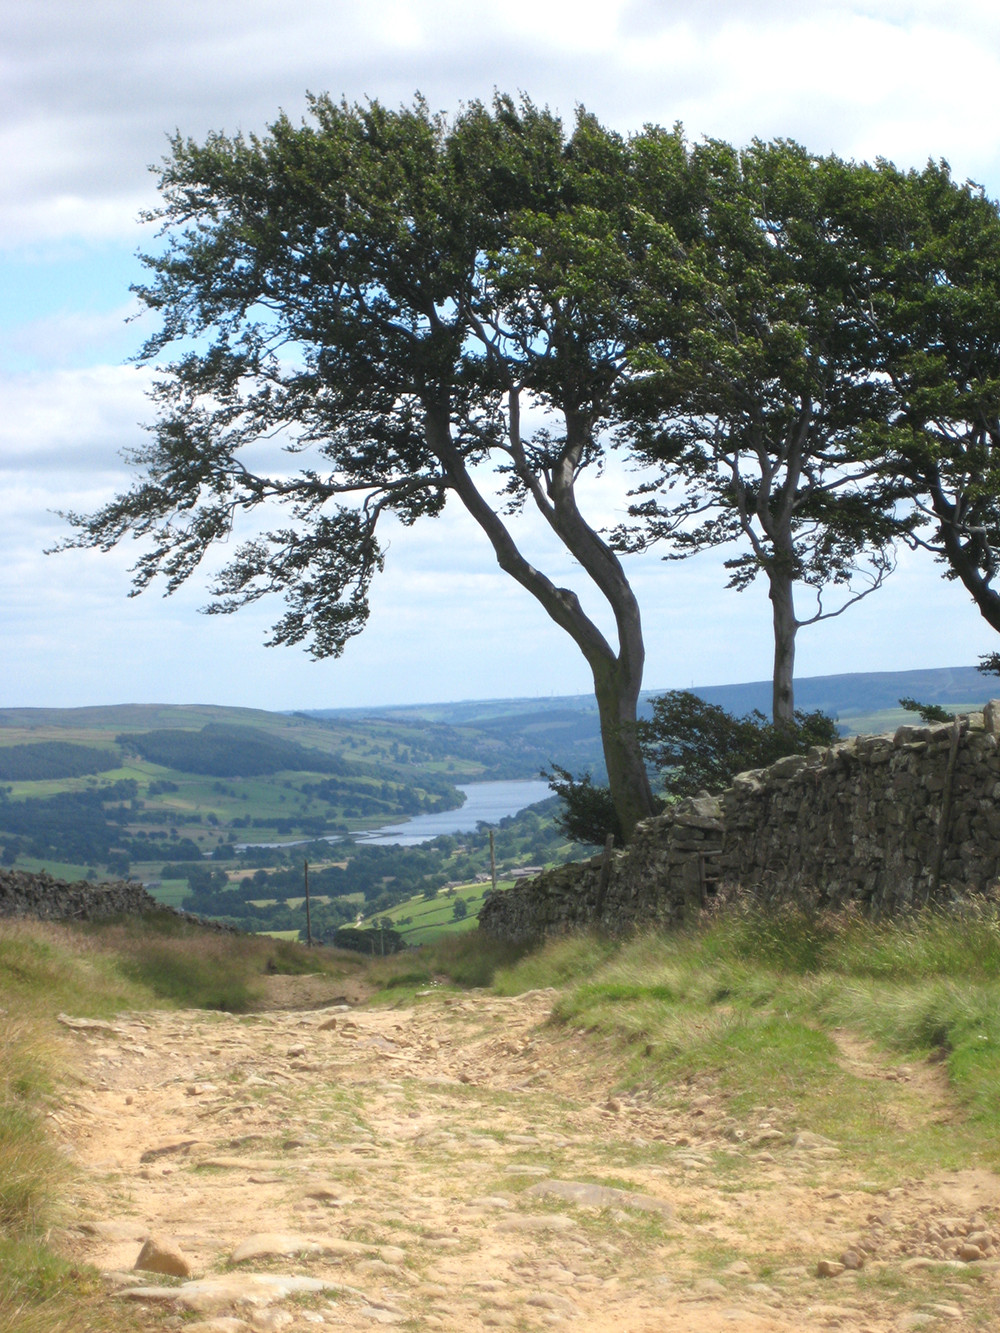 View to Gouthwaite Reservoir, Nidderdale, North Yorkshire